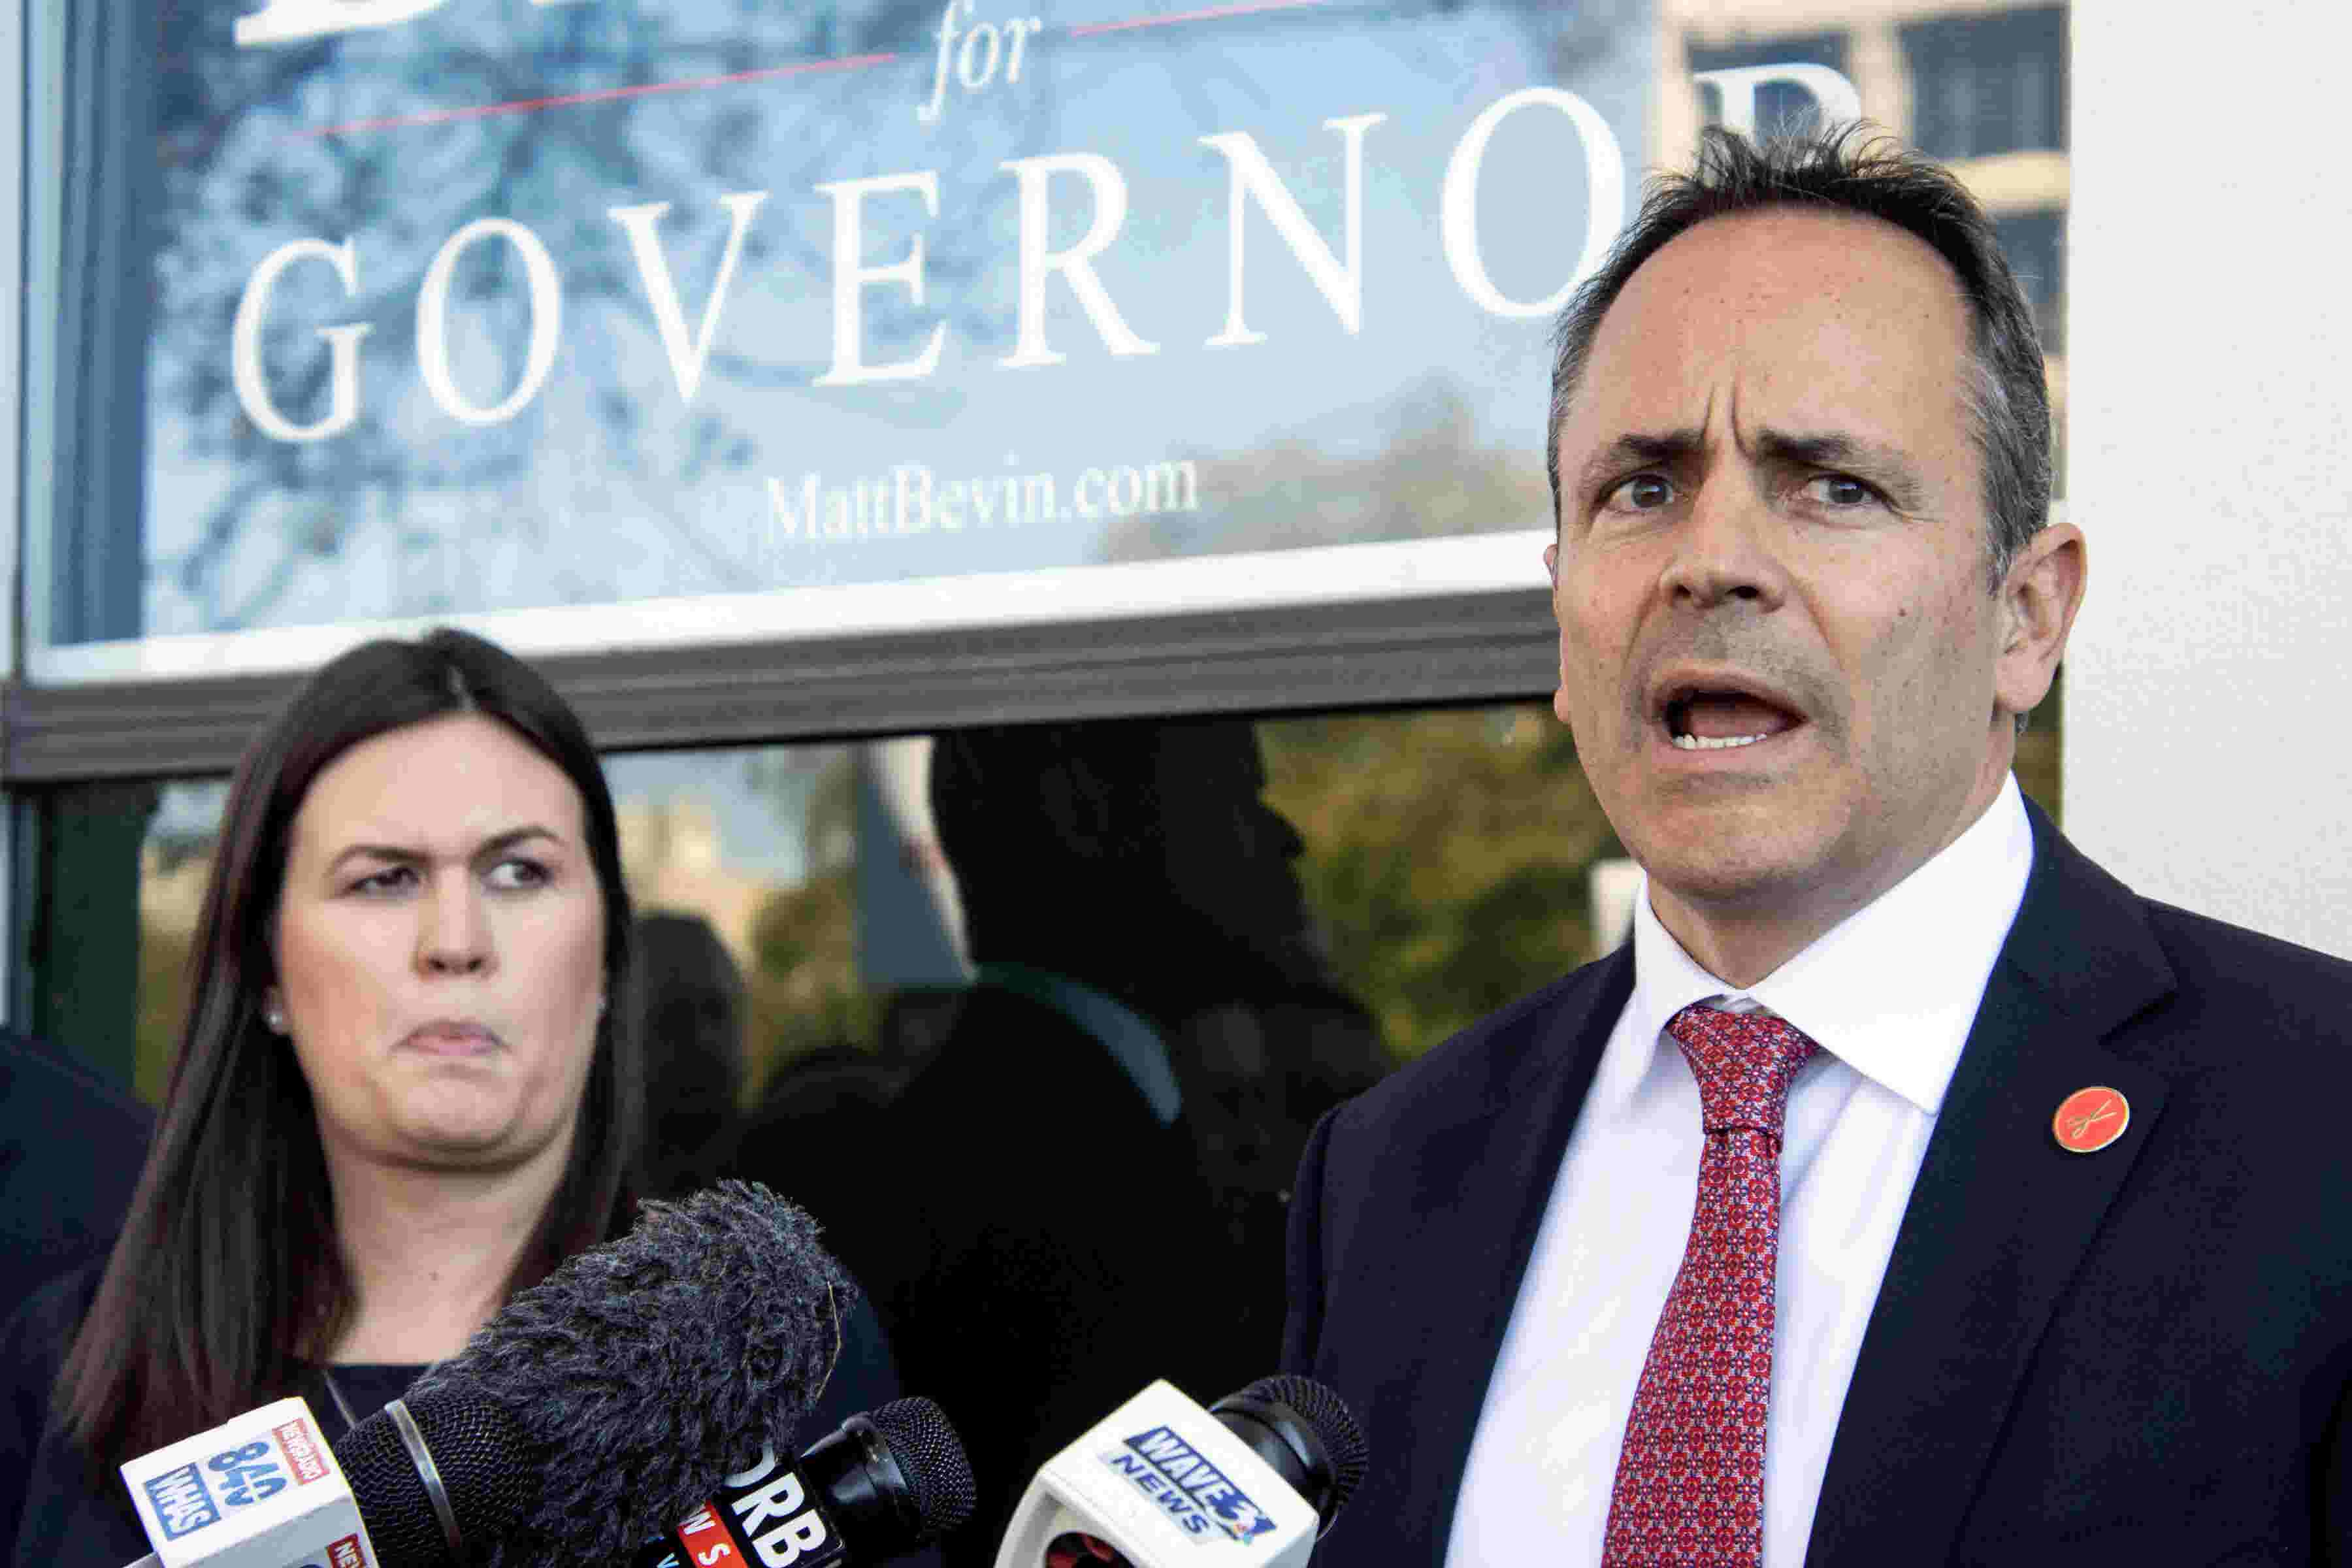 Mason-Dixon poll: Matt Bevin and Andy Beshear tied in race for Kentucky's governor